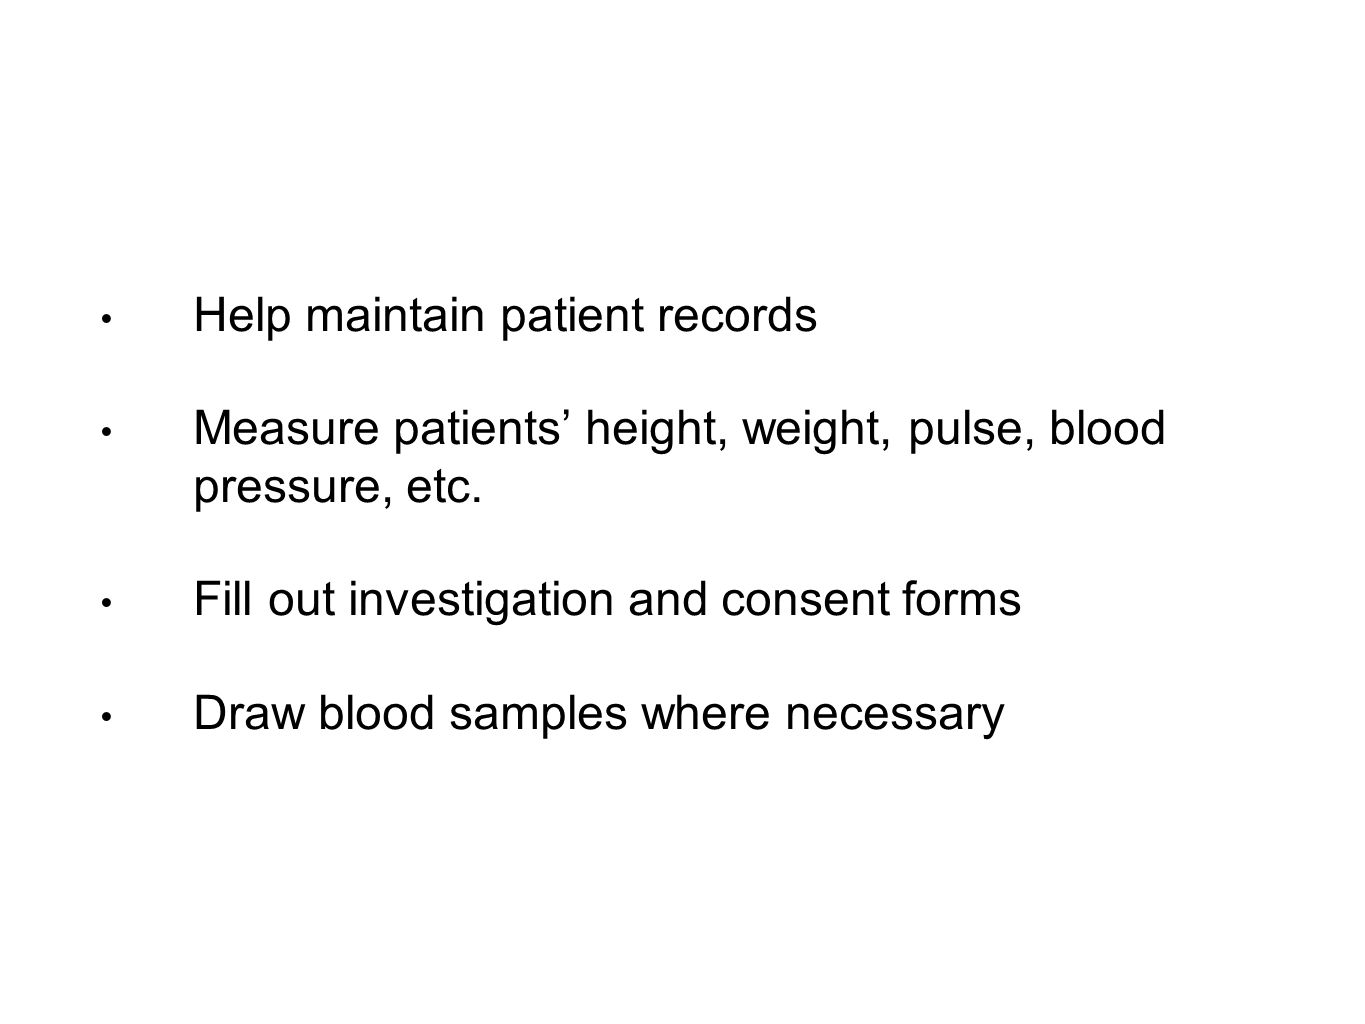 Help maintain patient records